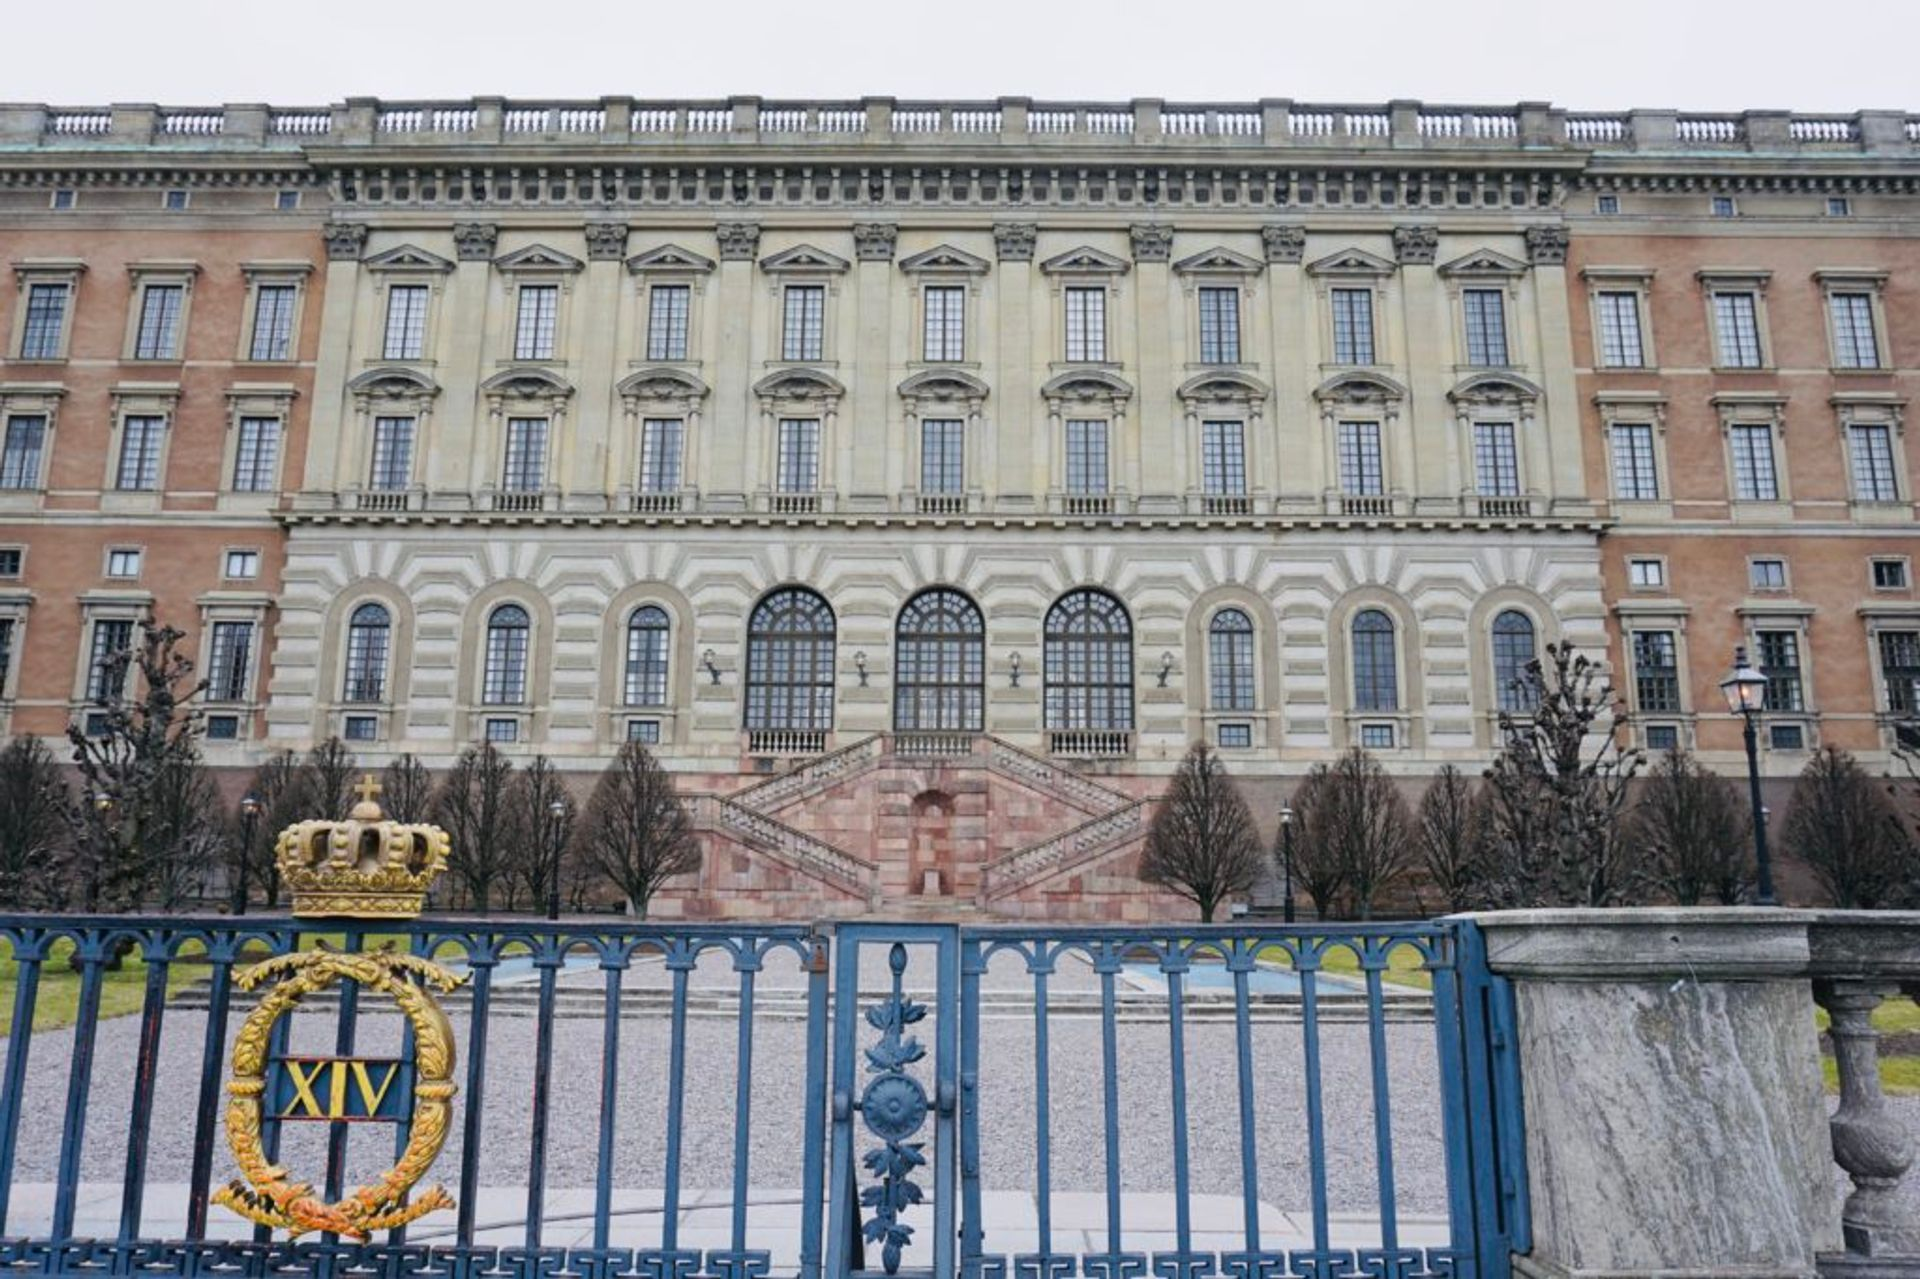 Exterior of the Royal Palace in Stockholm.